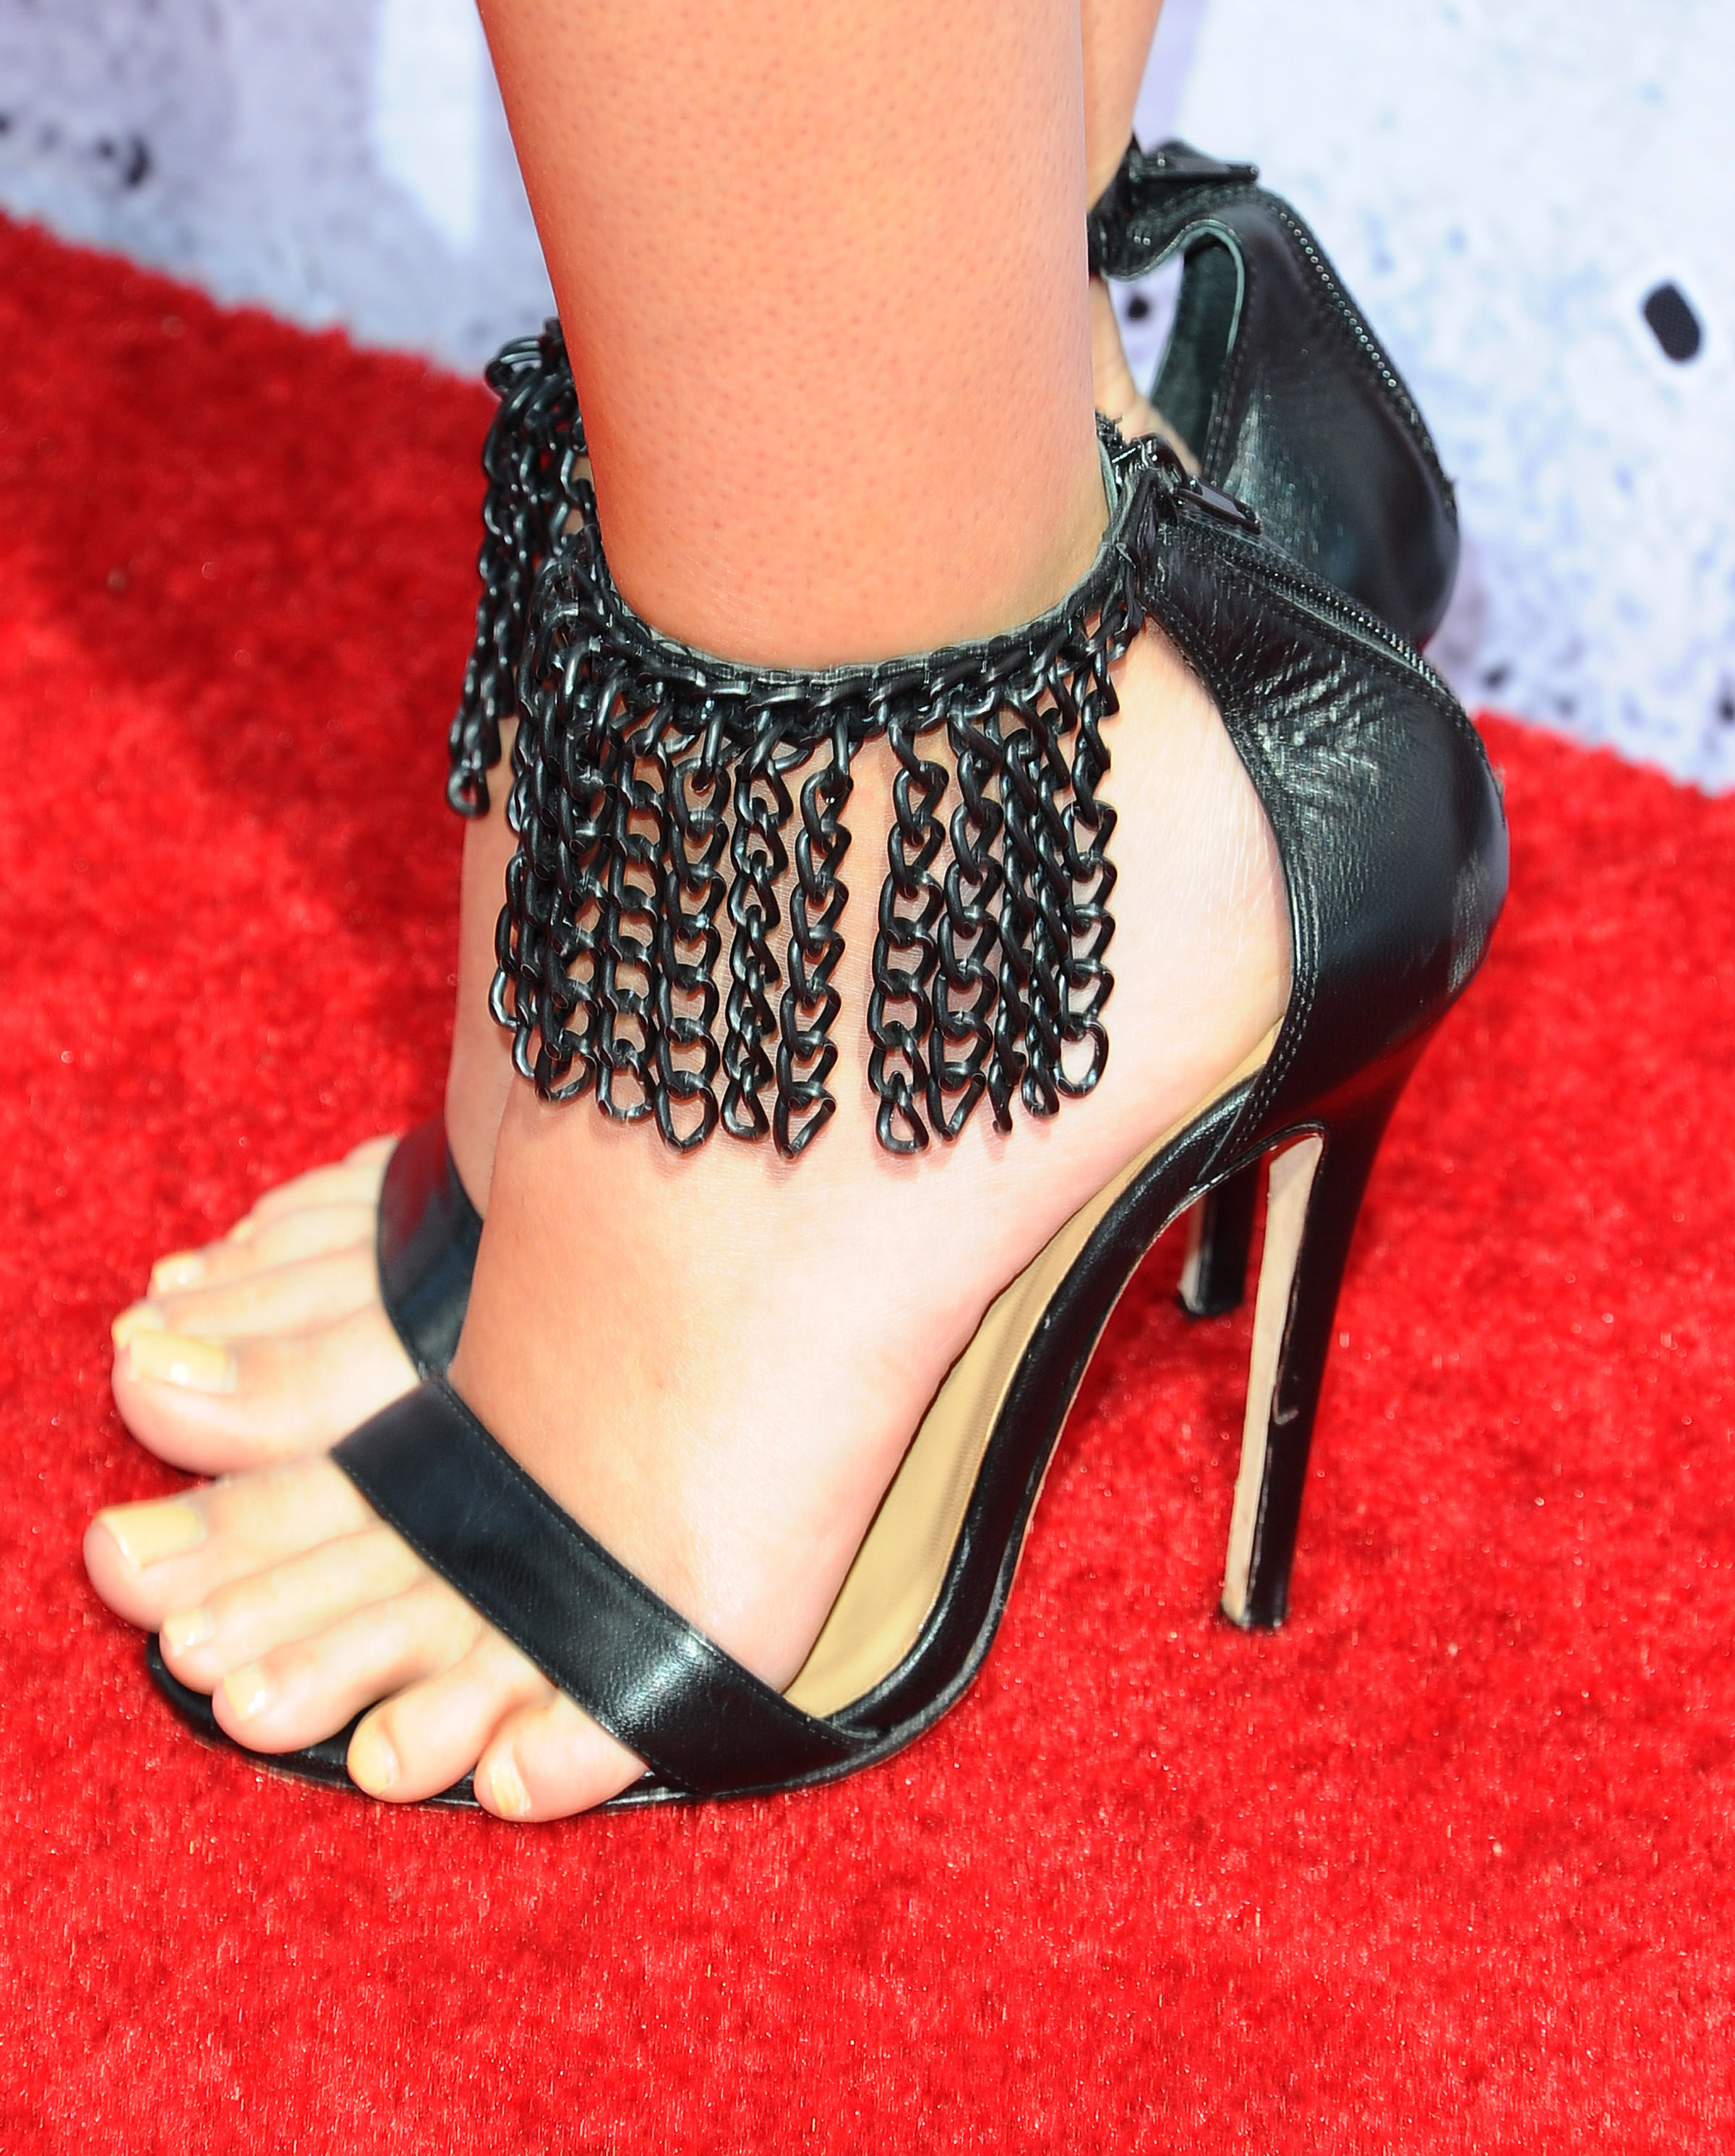 Laura Maranos Hot Feet in Trophy Bling Sandals by Ruthie